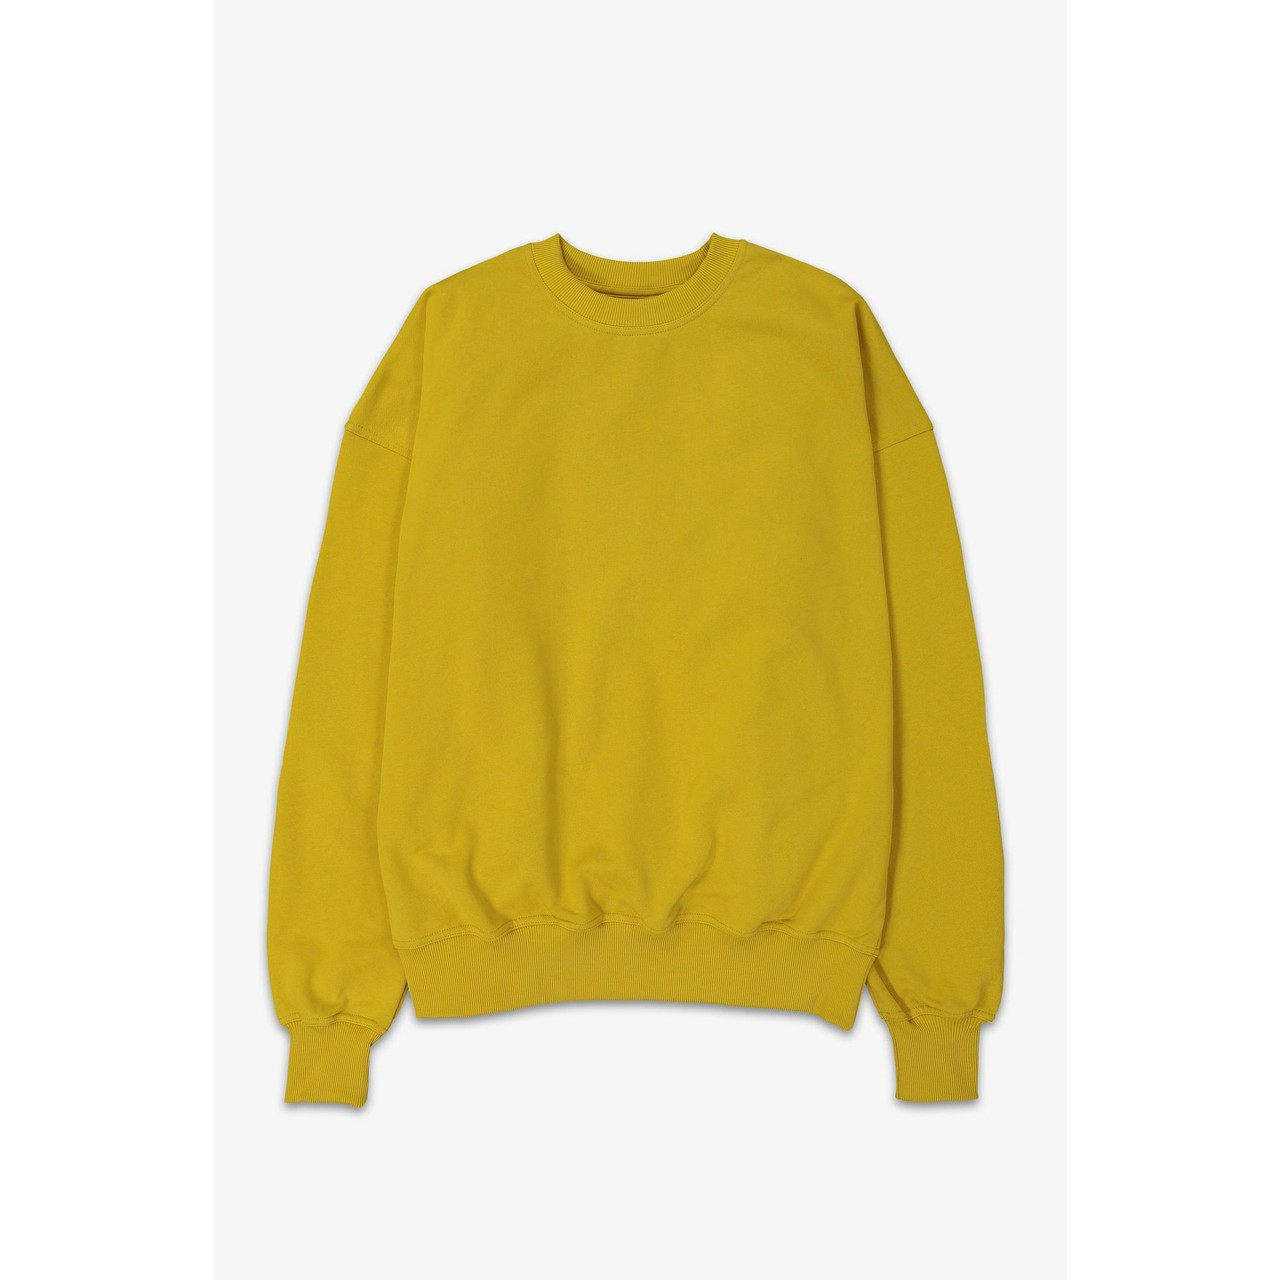 Coltesse Sador Sweat Shirt in Yellow